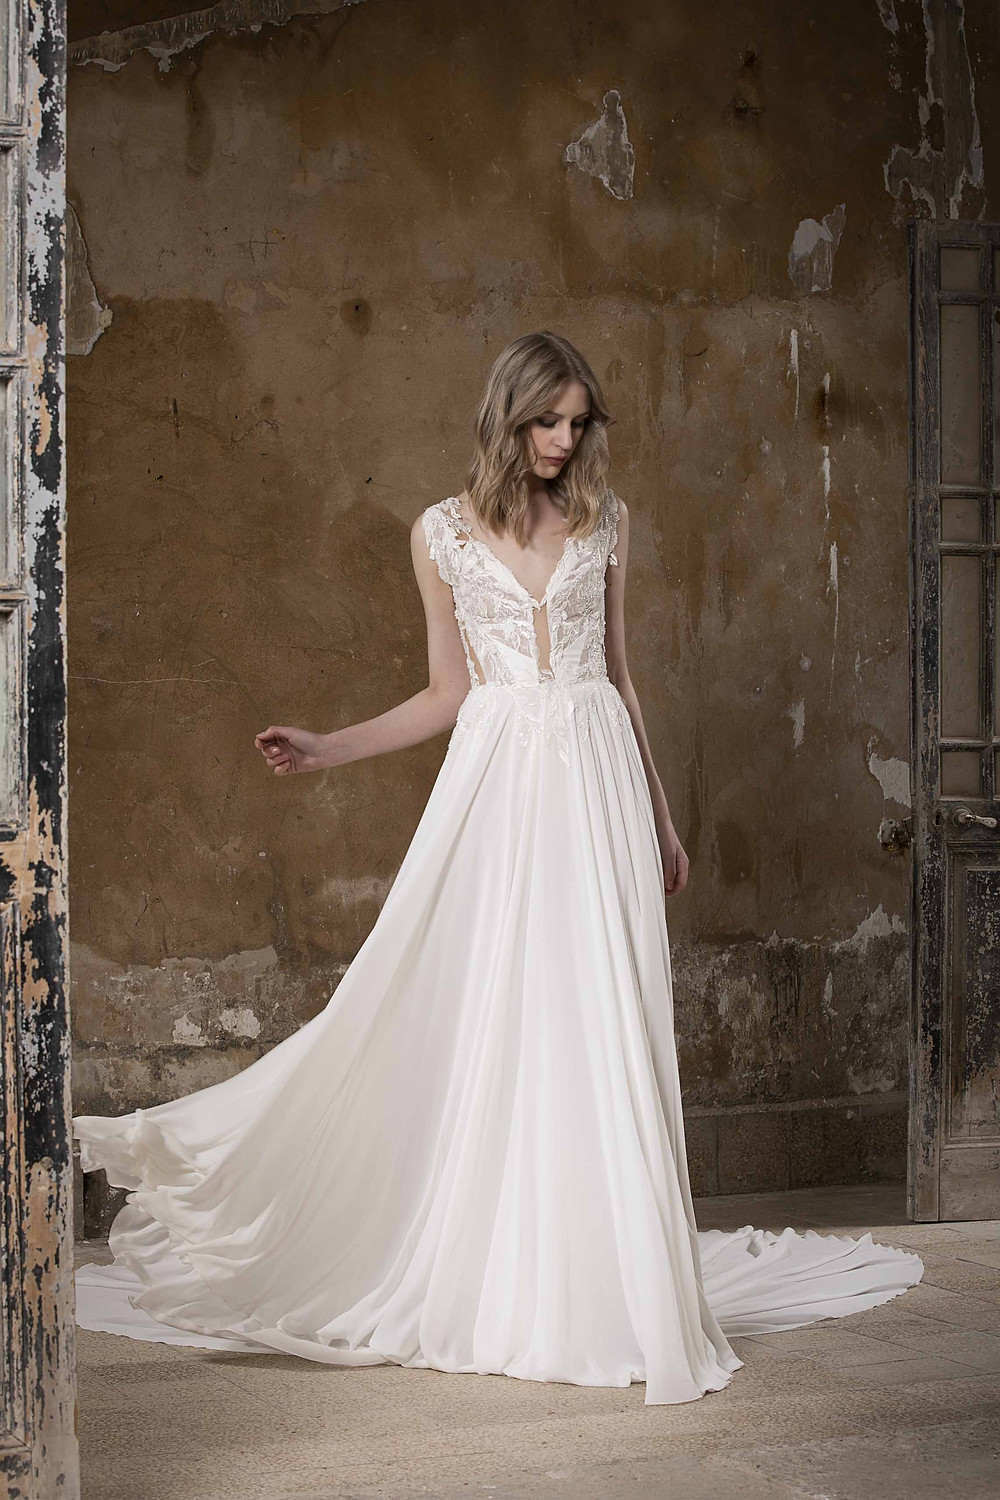 An A-line wedding gown enriched with delicate detailing and a soft flowy skirt